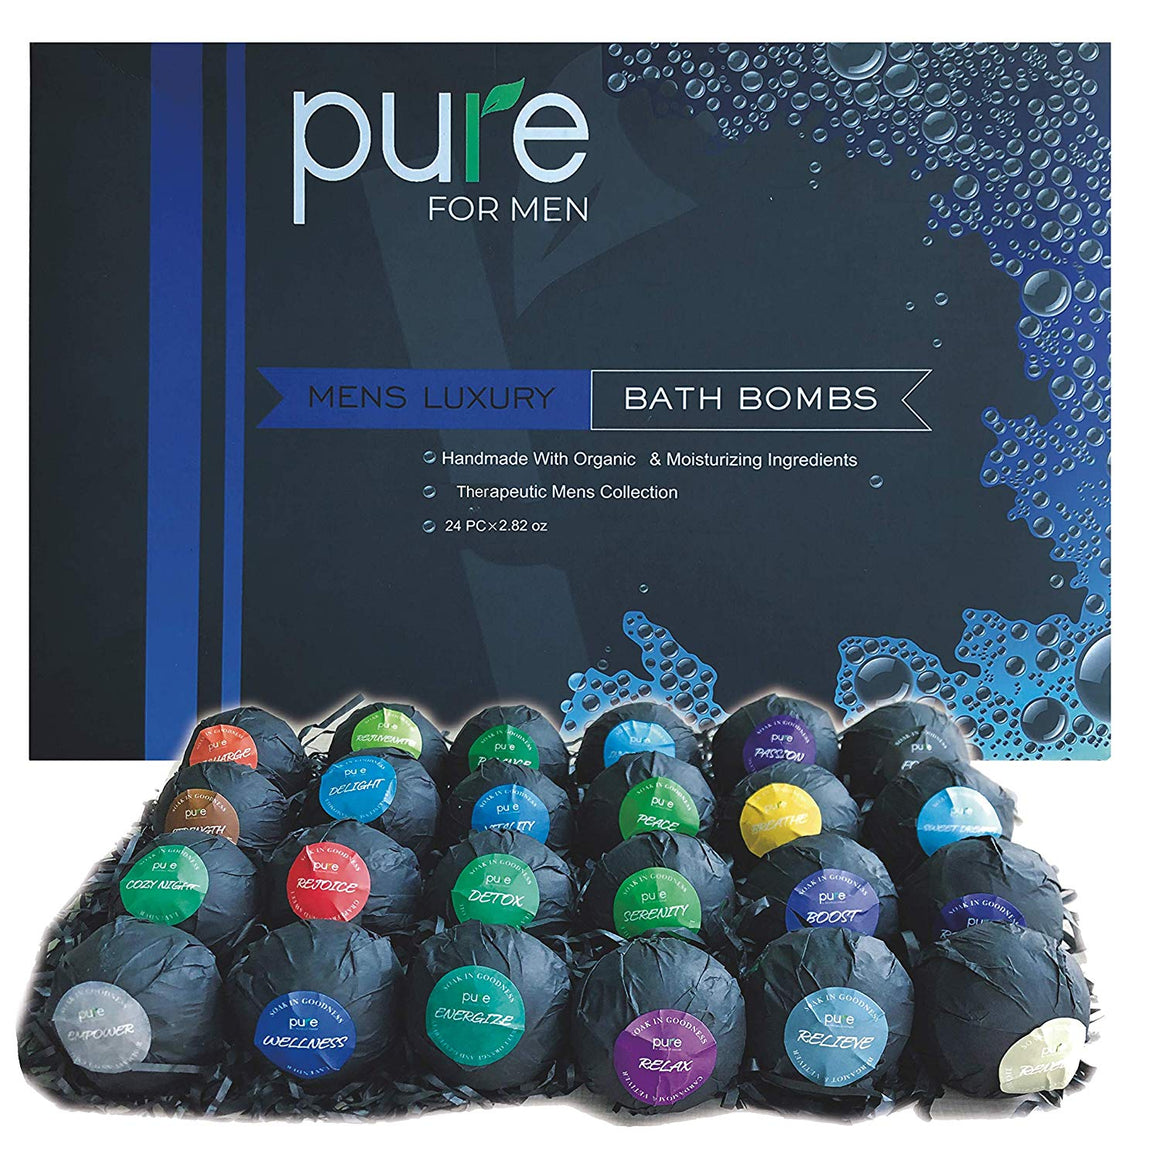 Men's Bath Bombs Gift Set. 24 Therapeutic Shea Bath Bombs for Men! Large Spa Fizzers with Moisturizing & Essential Oils. Aromatherapy Bath Bomb Set makes Best Gift Set for Men, Husband, Boyfriend etc